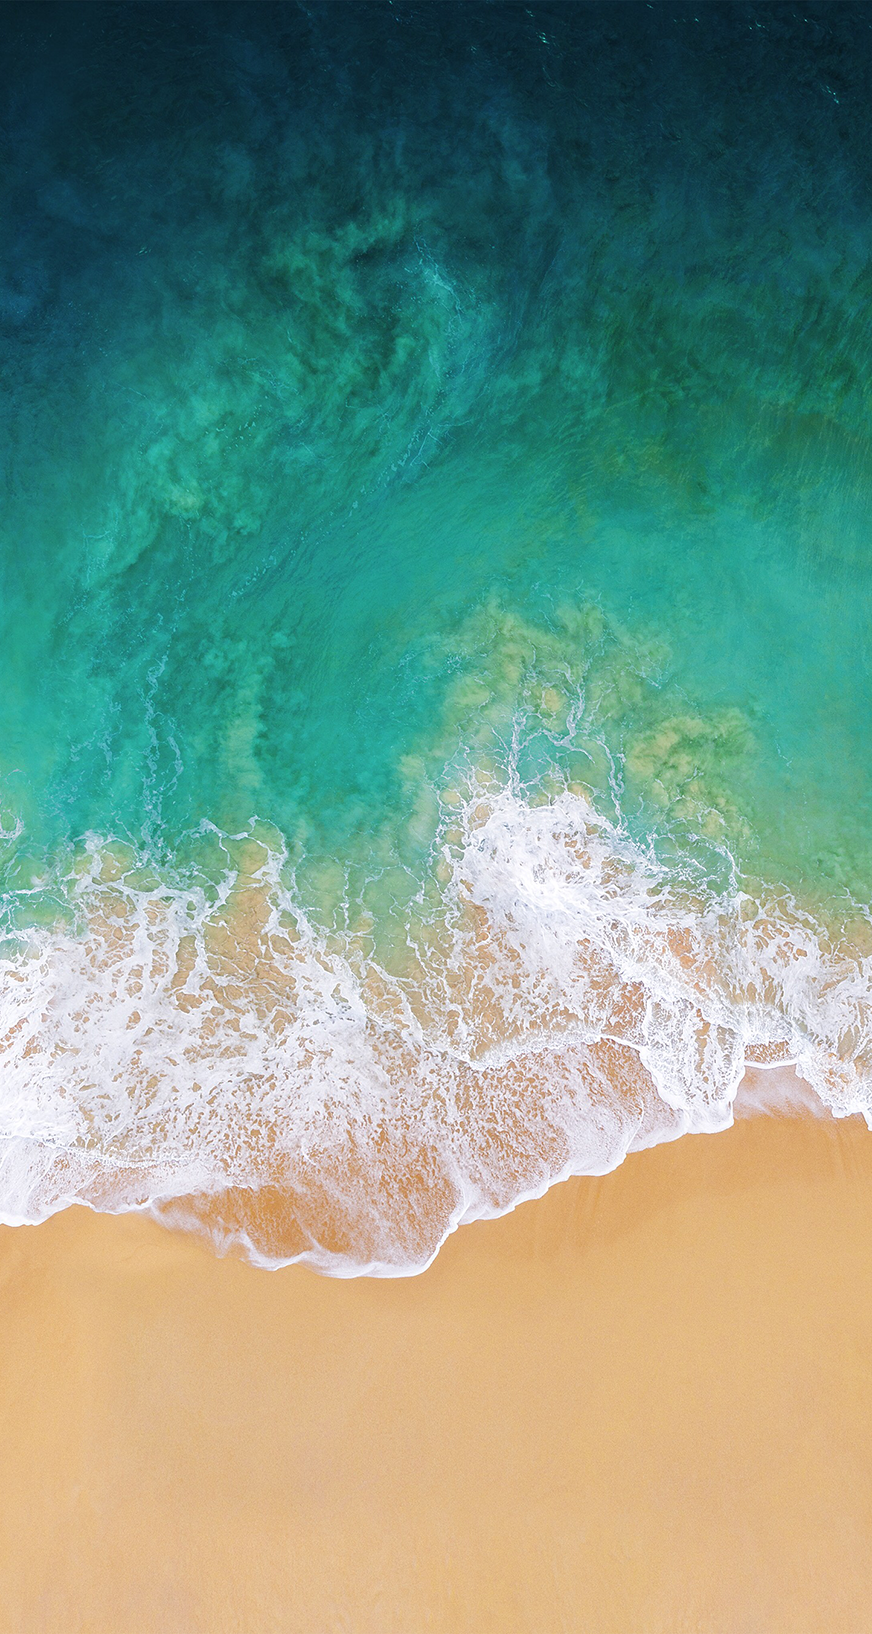 Download the Real iOS 11 Wallpaper for iPhone   iClarified 872x1634